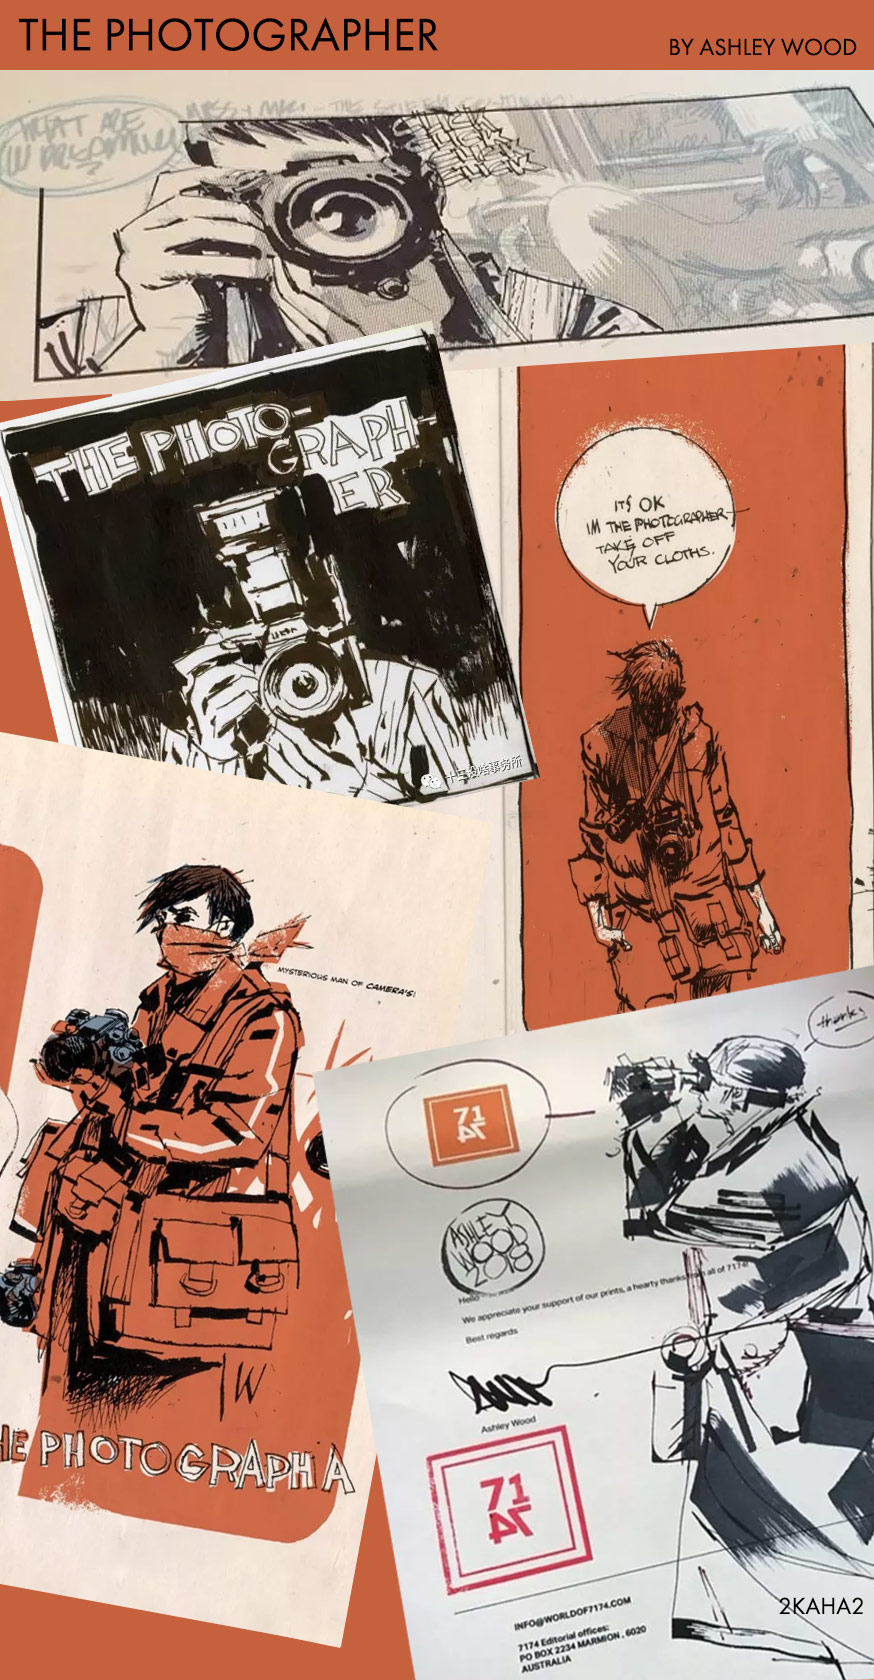 The Photographer by Ashley Wood